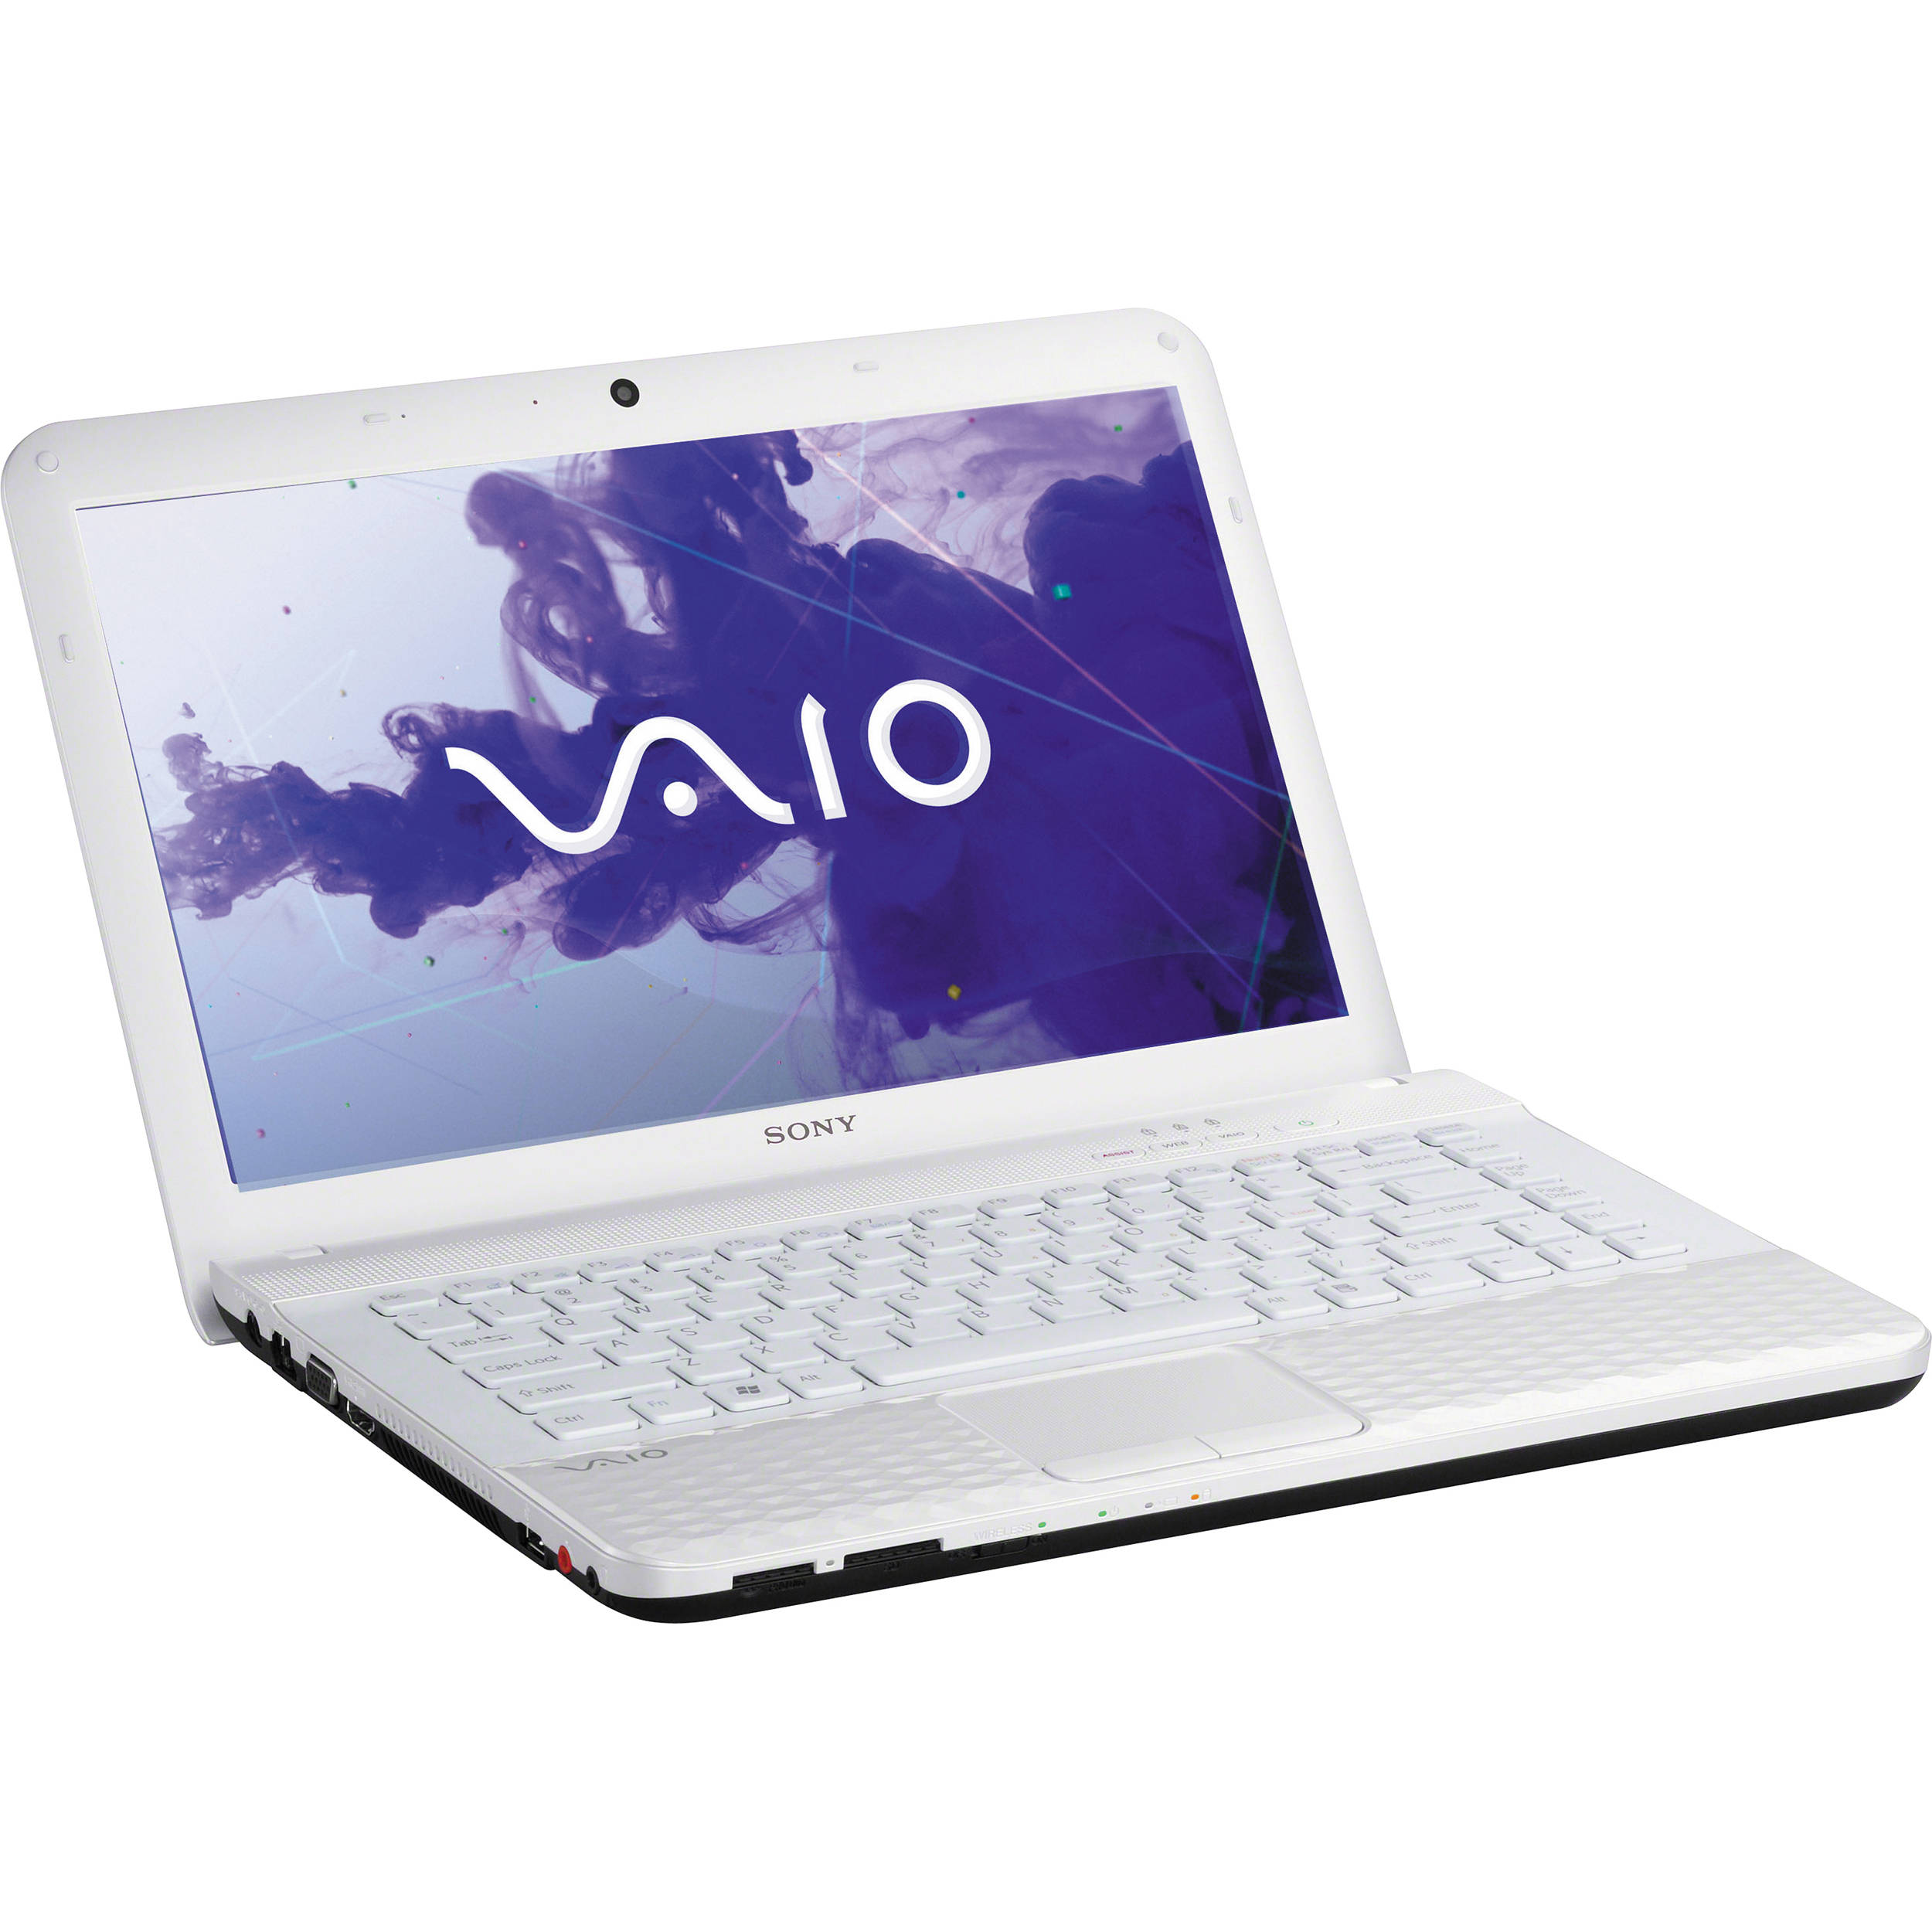 Sony Vaio VPCEG23FX Intel Wireless Display Driver for Windows